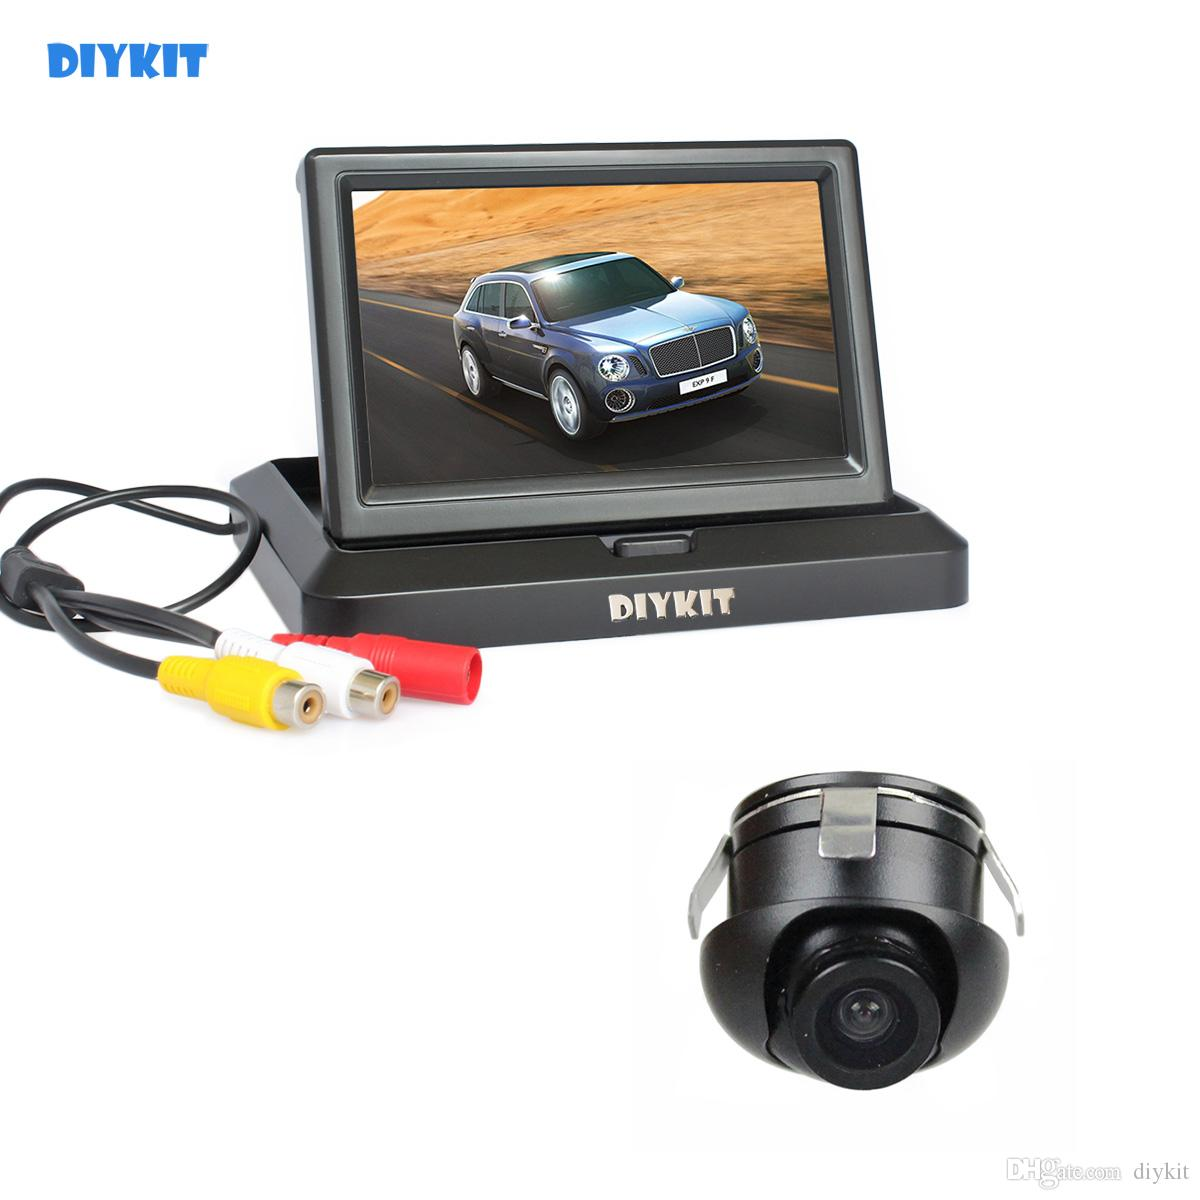 DIYKIT Wired 5inch Rear View Monitor Car Monitor + Back Up Rear Front Side View Cam for Parking Assistance System